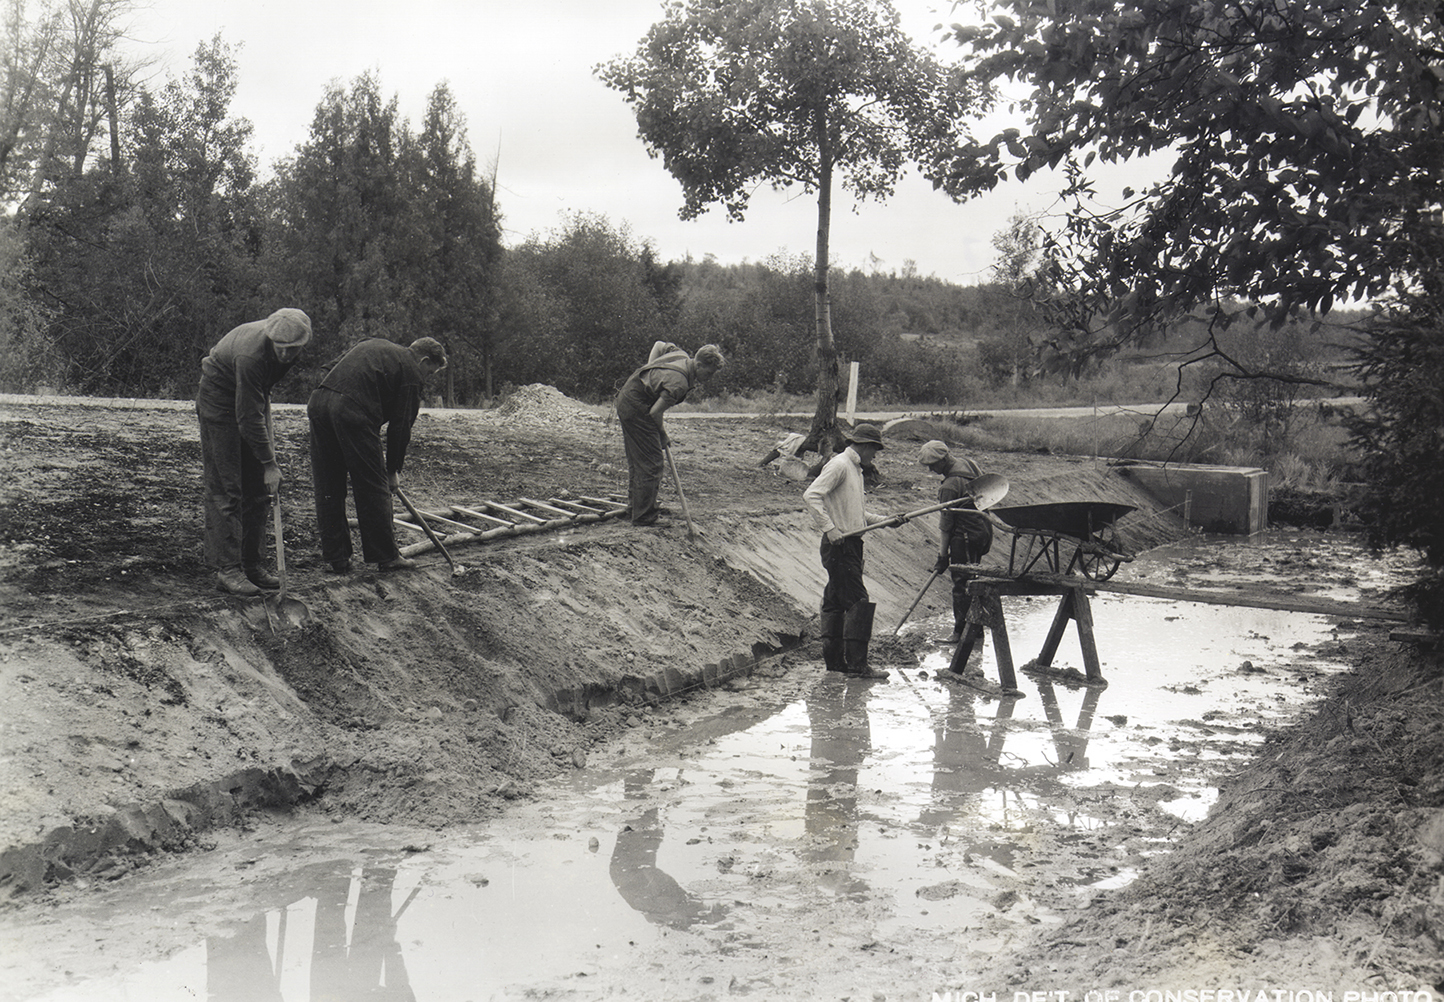 Civilian Conservation Corps crews worked on countless projects across Michigan and the nation during the 1930s.